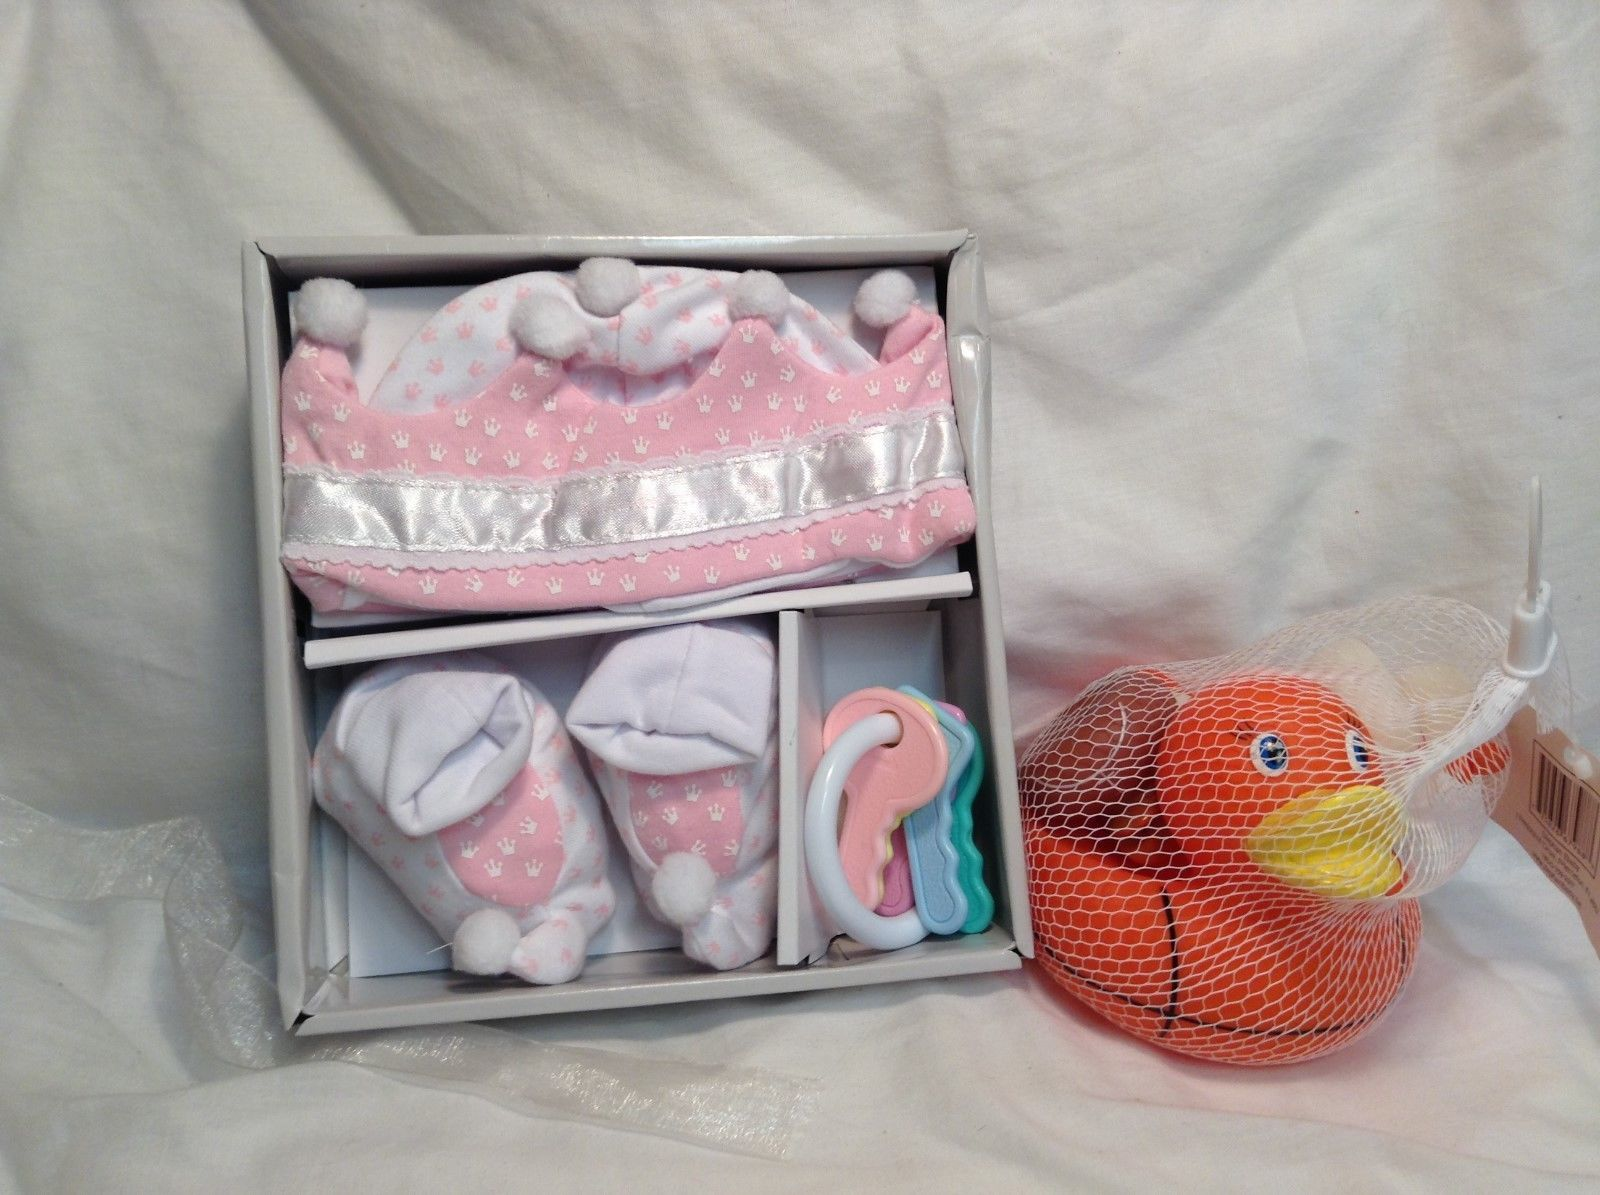 NEW Stephan Baby Royal Tee's Clothing Set w Rubber Ducky Bath Toy